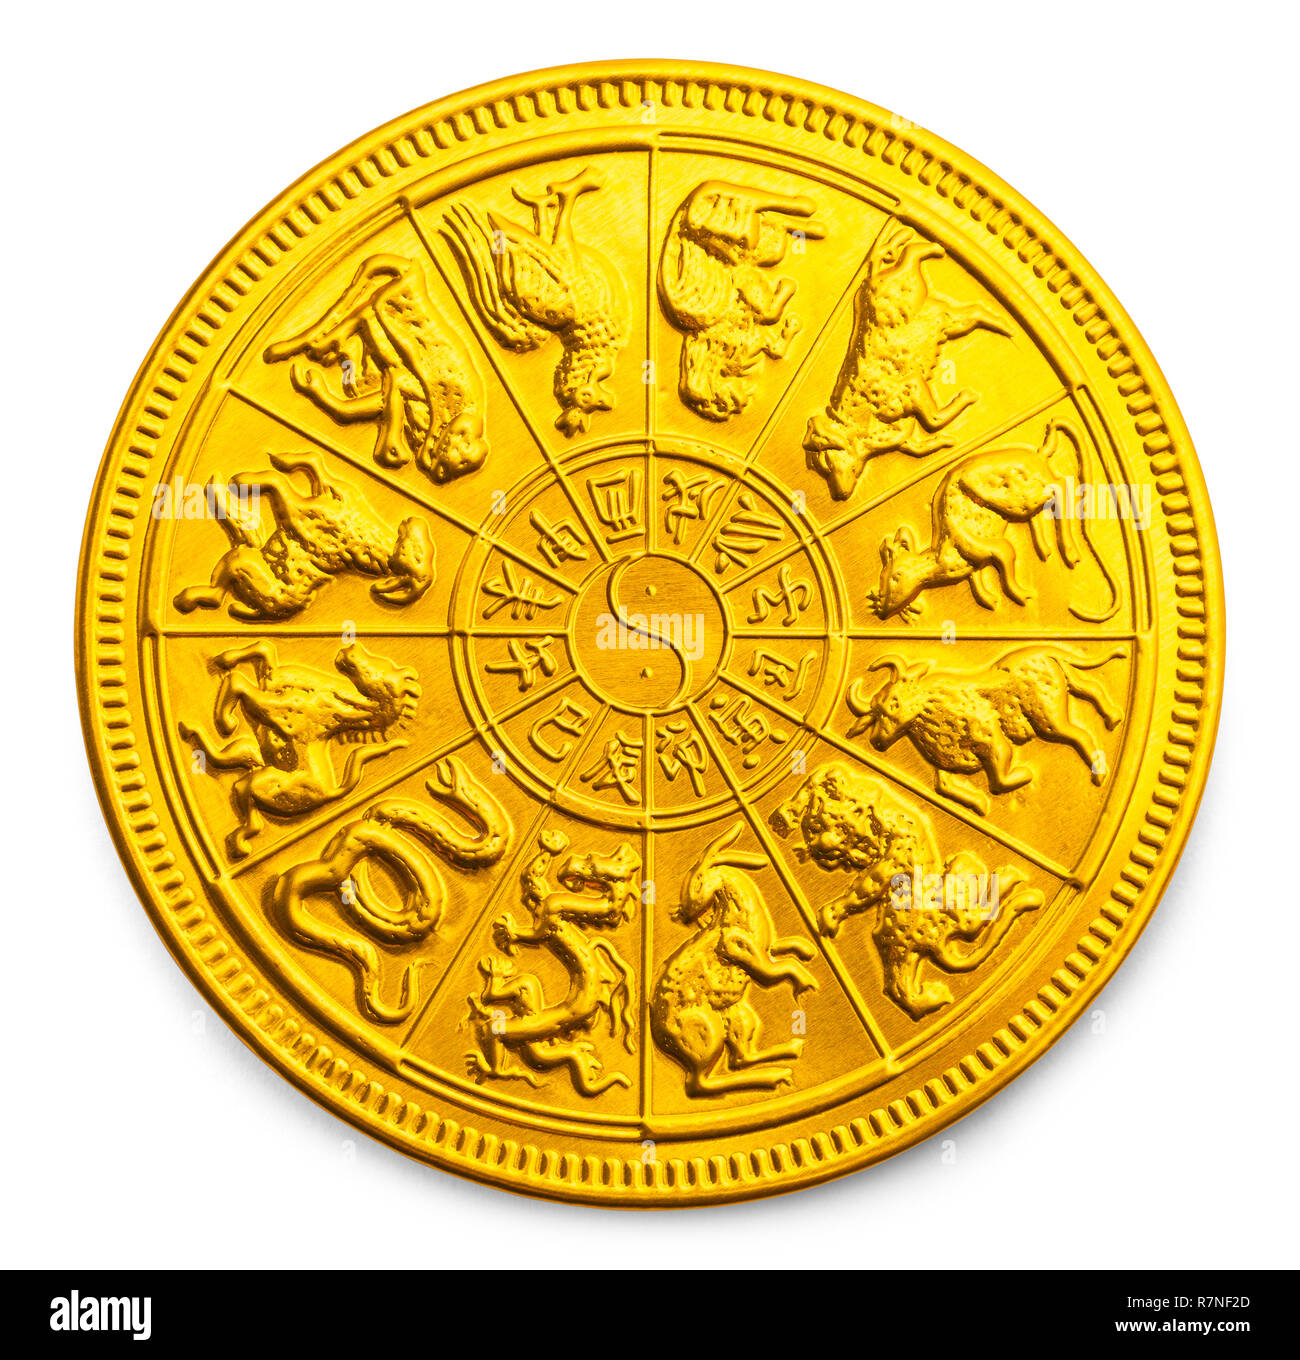 Gold Chinese New Year Calendar Zodiac Coin Isolated on White. - Stock Image